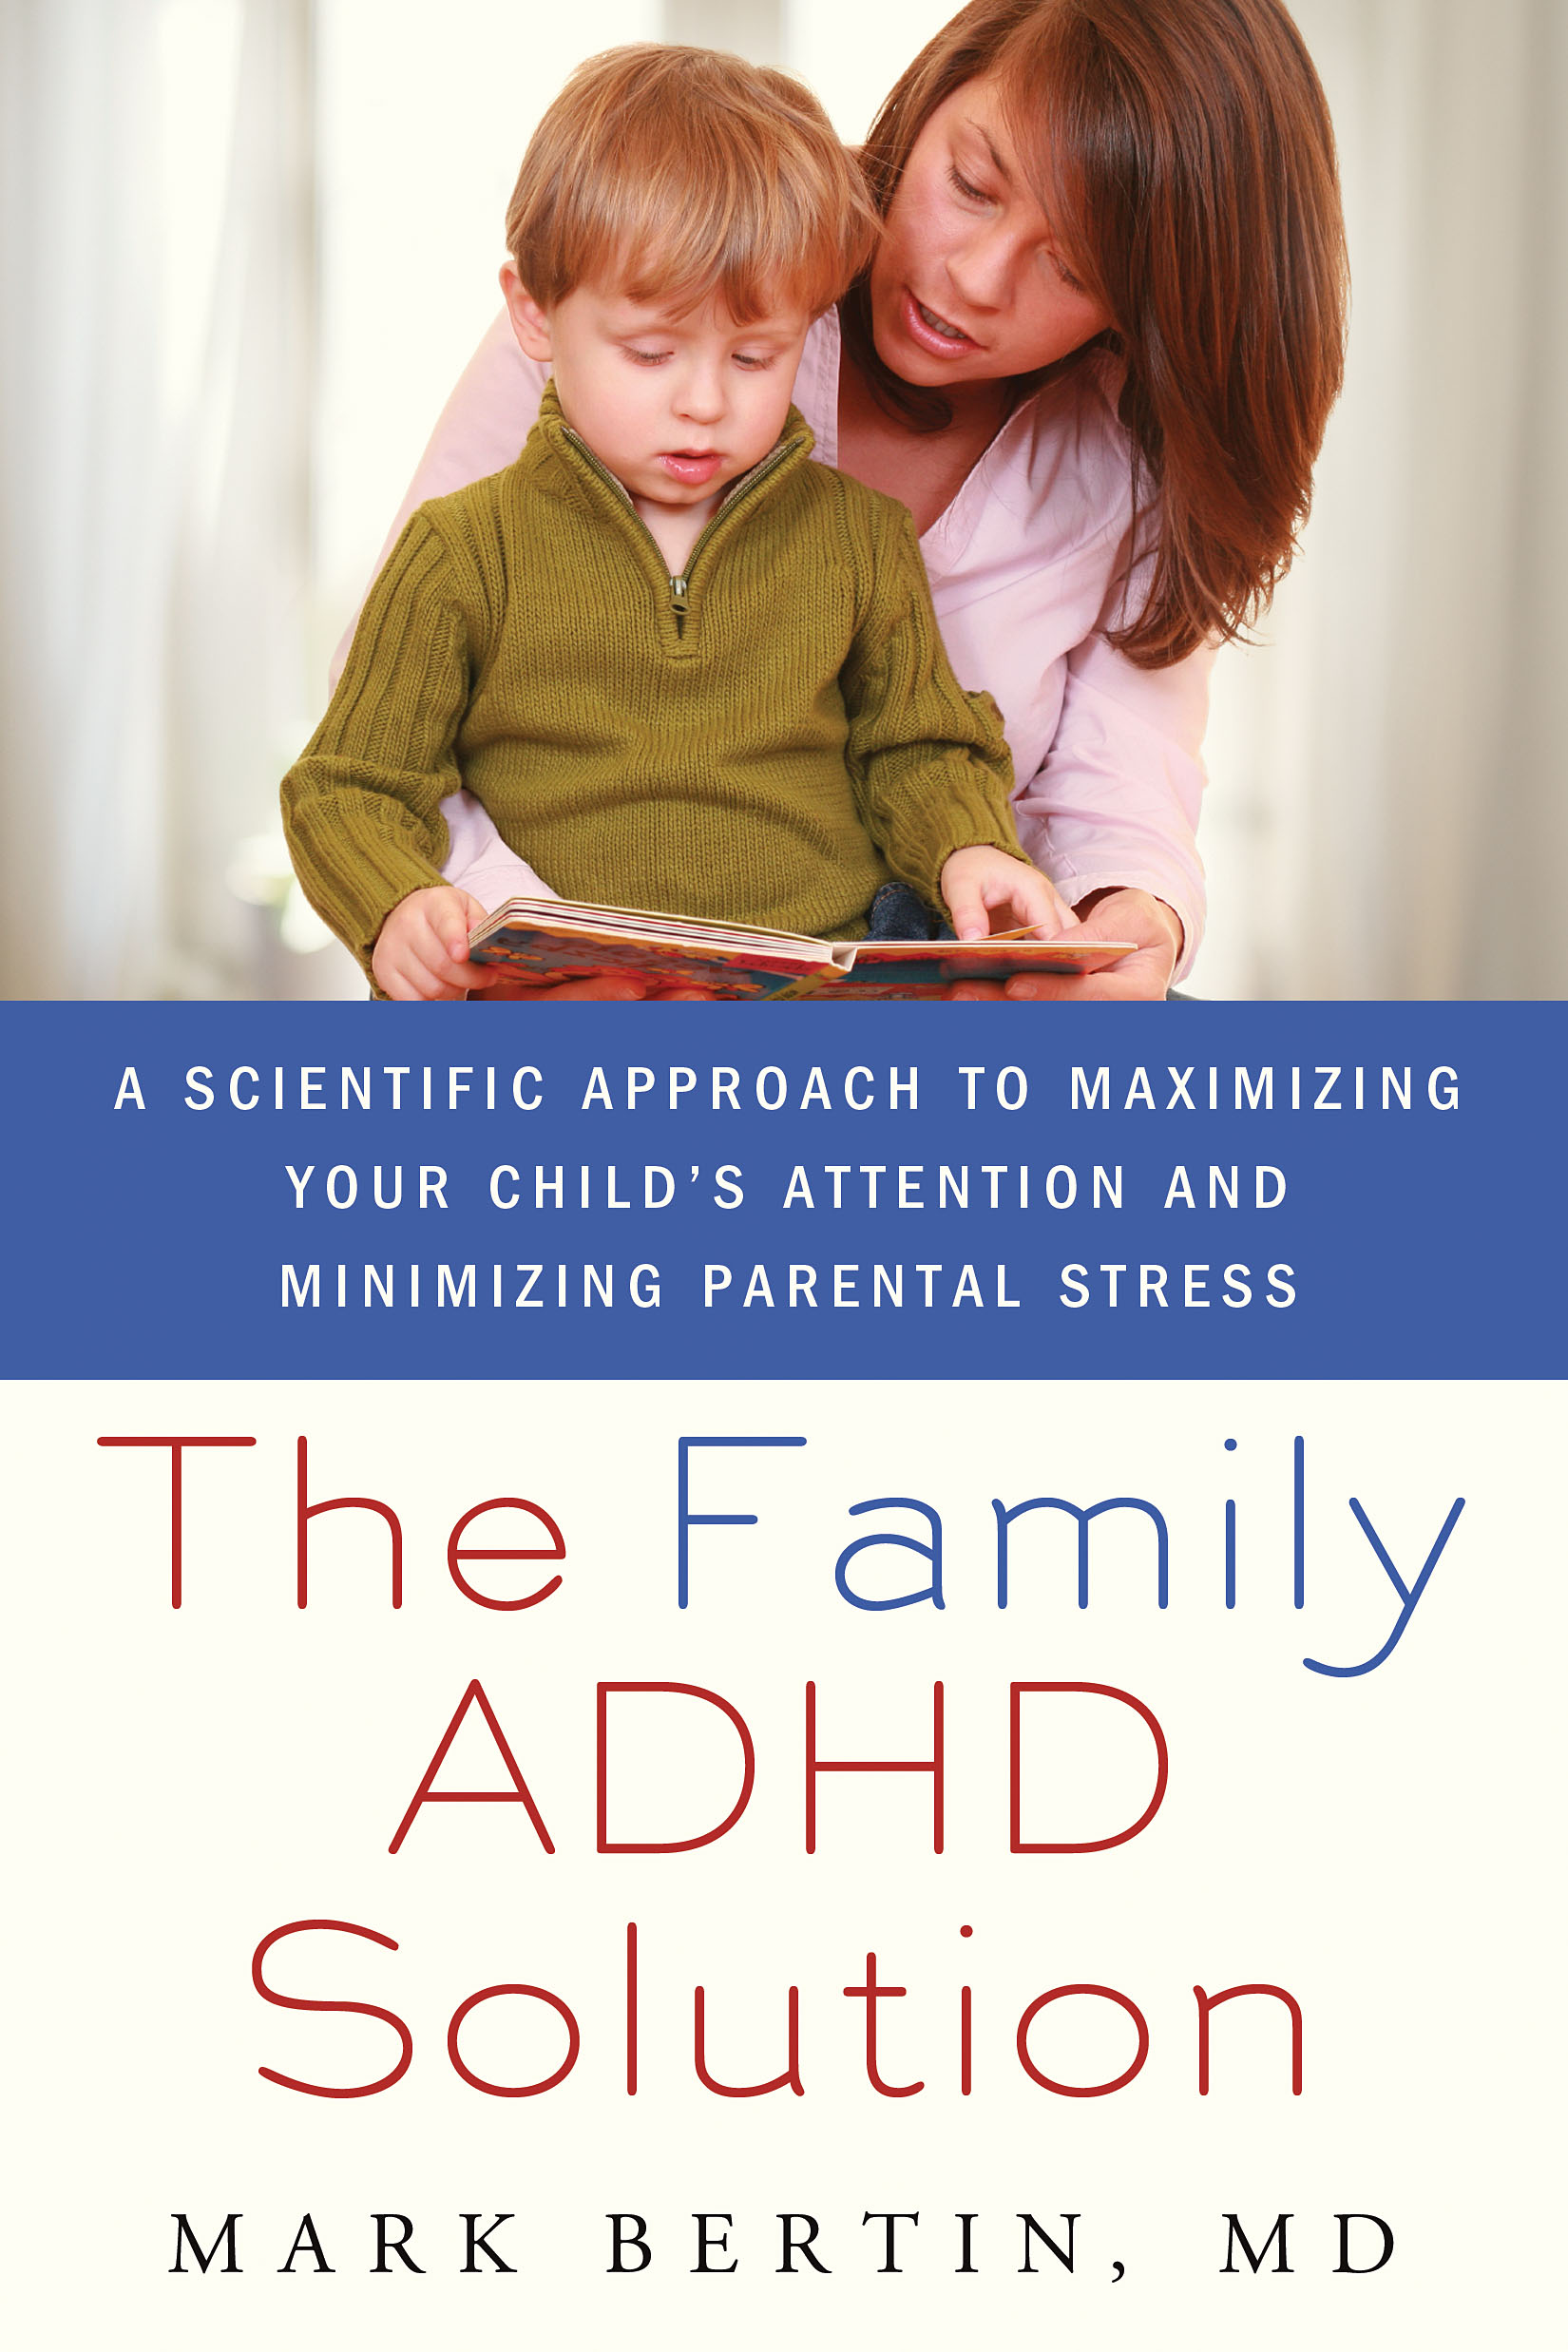 """The Family ADHD Solution"" by Mark Bertin, MD book cover."